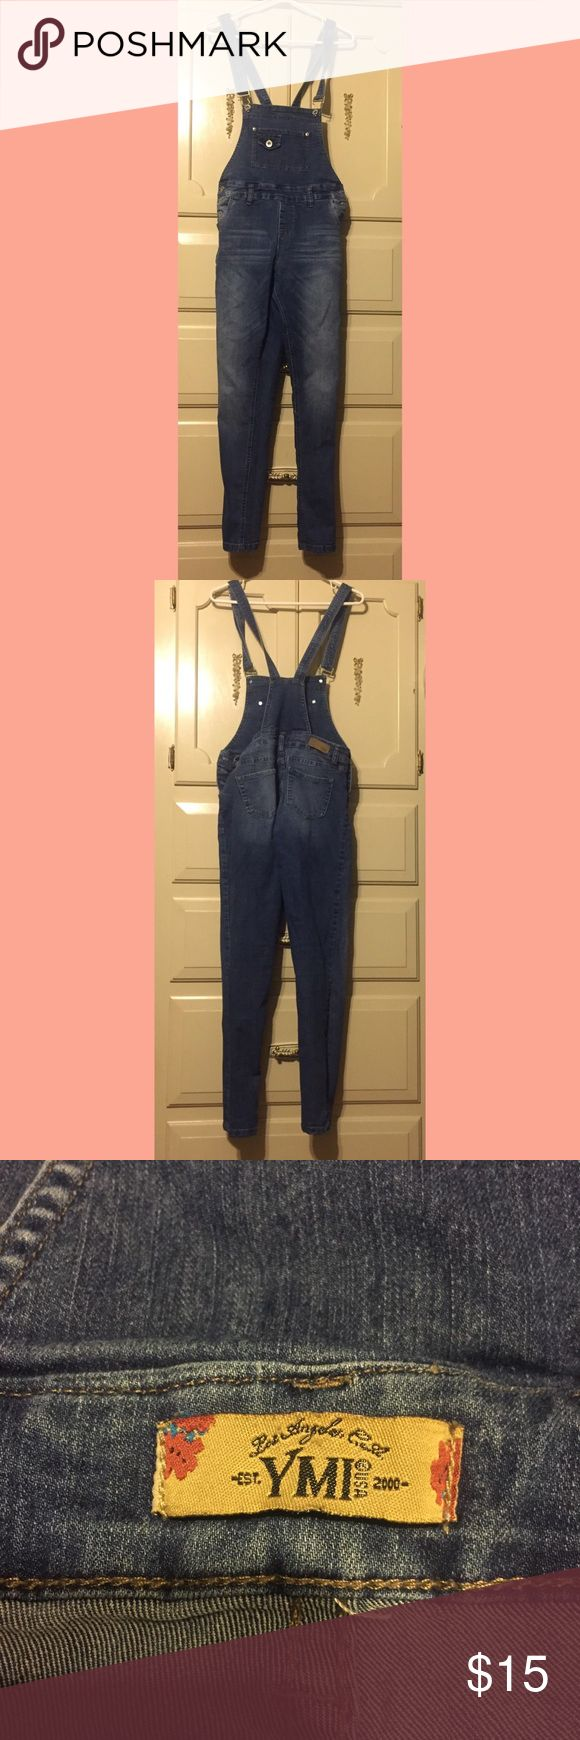 Denim Overalls These are Skinny jean fitting overalls that have been slightly worn but are in great condition no show of wear! Listed as a size nine but they are a little to tight on me and I wear a size 7 in American eagle jeans so I'll list them as a 6! I do accept offers but no trades (: YMI Jeans Overalls